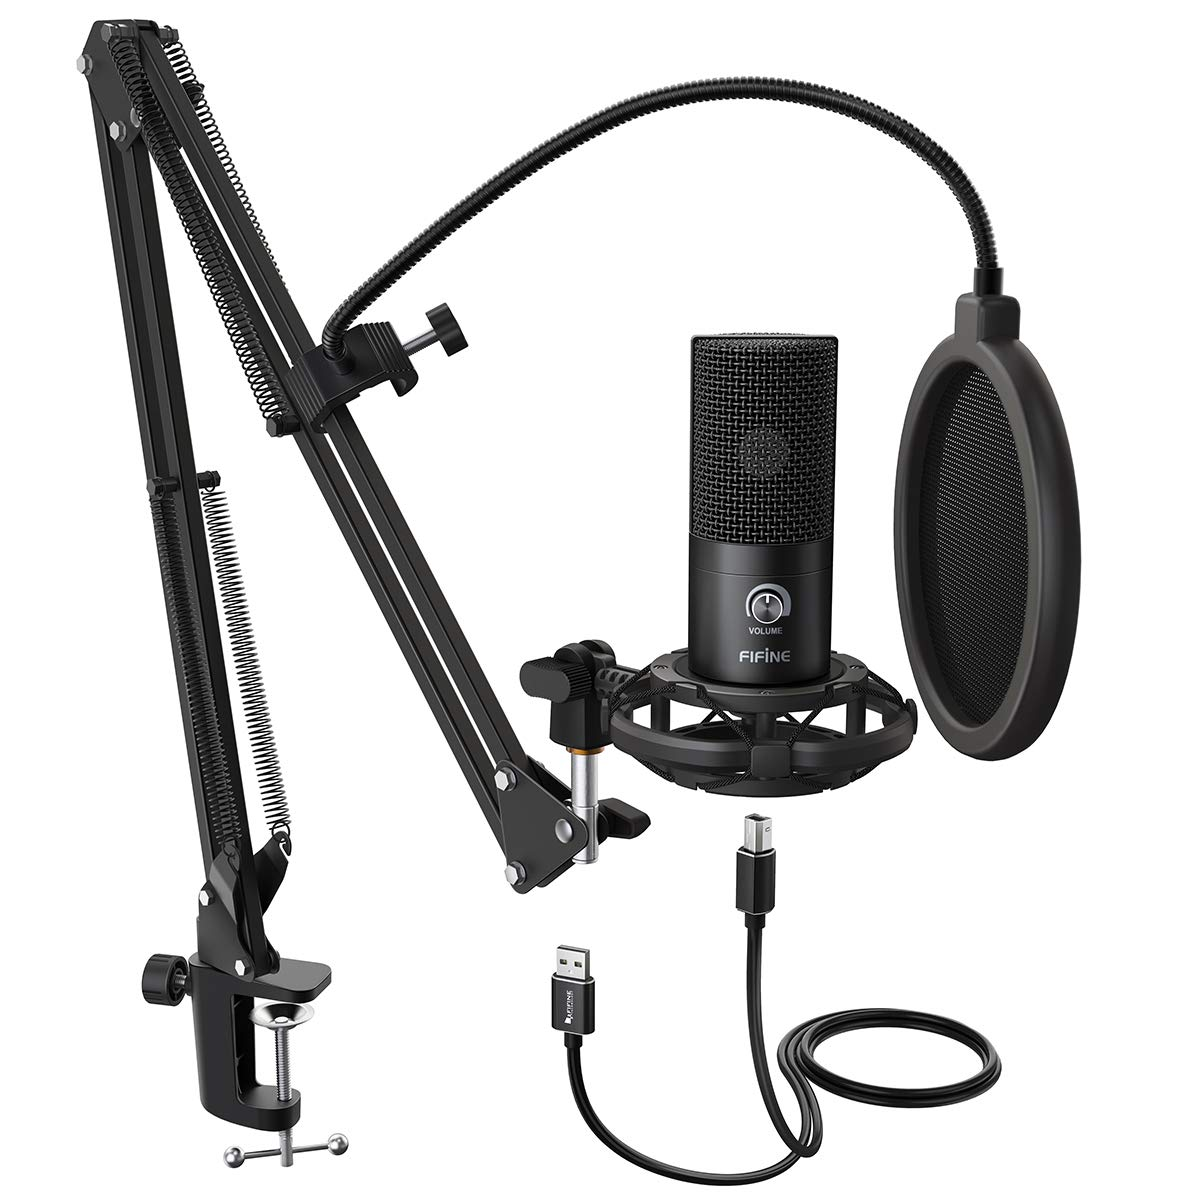 FIFINE Microphone Adjustable Instruments Streaming T669